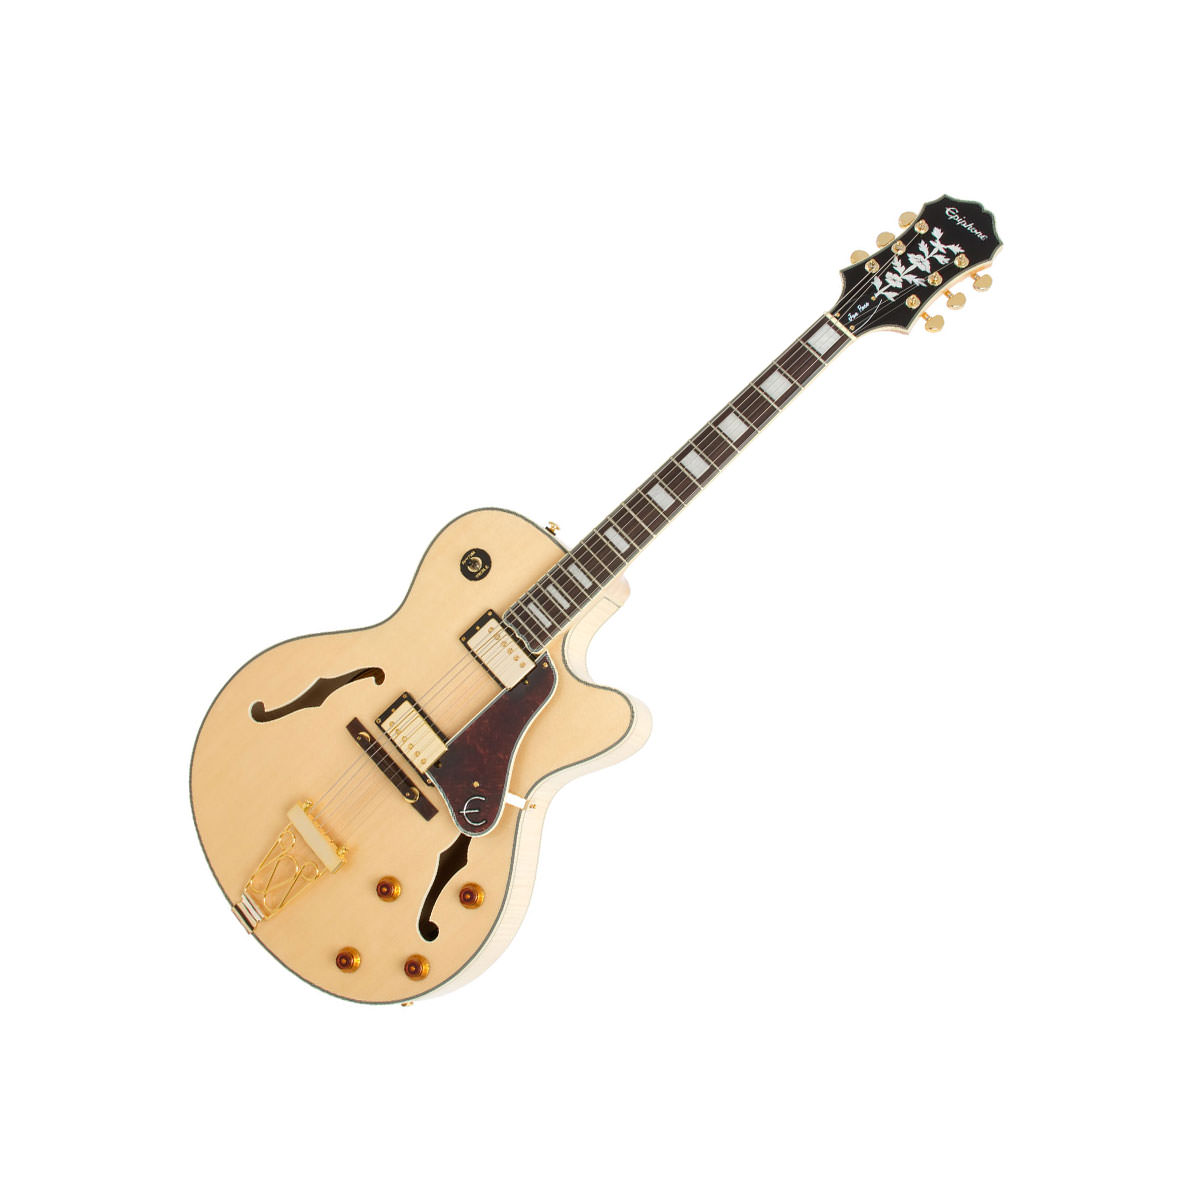 Epiphone Pro Joe Pass Emporer II Semi Hollow Body